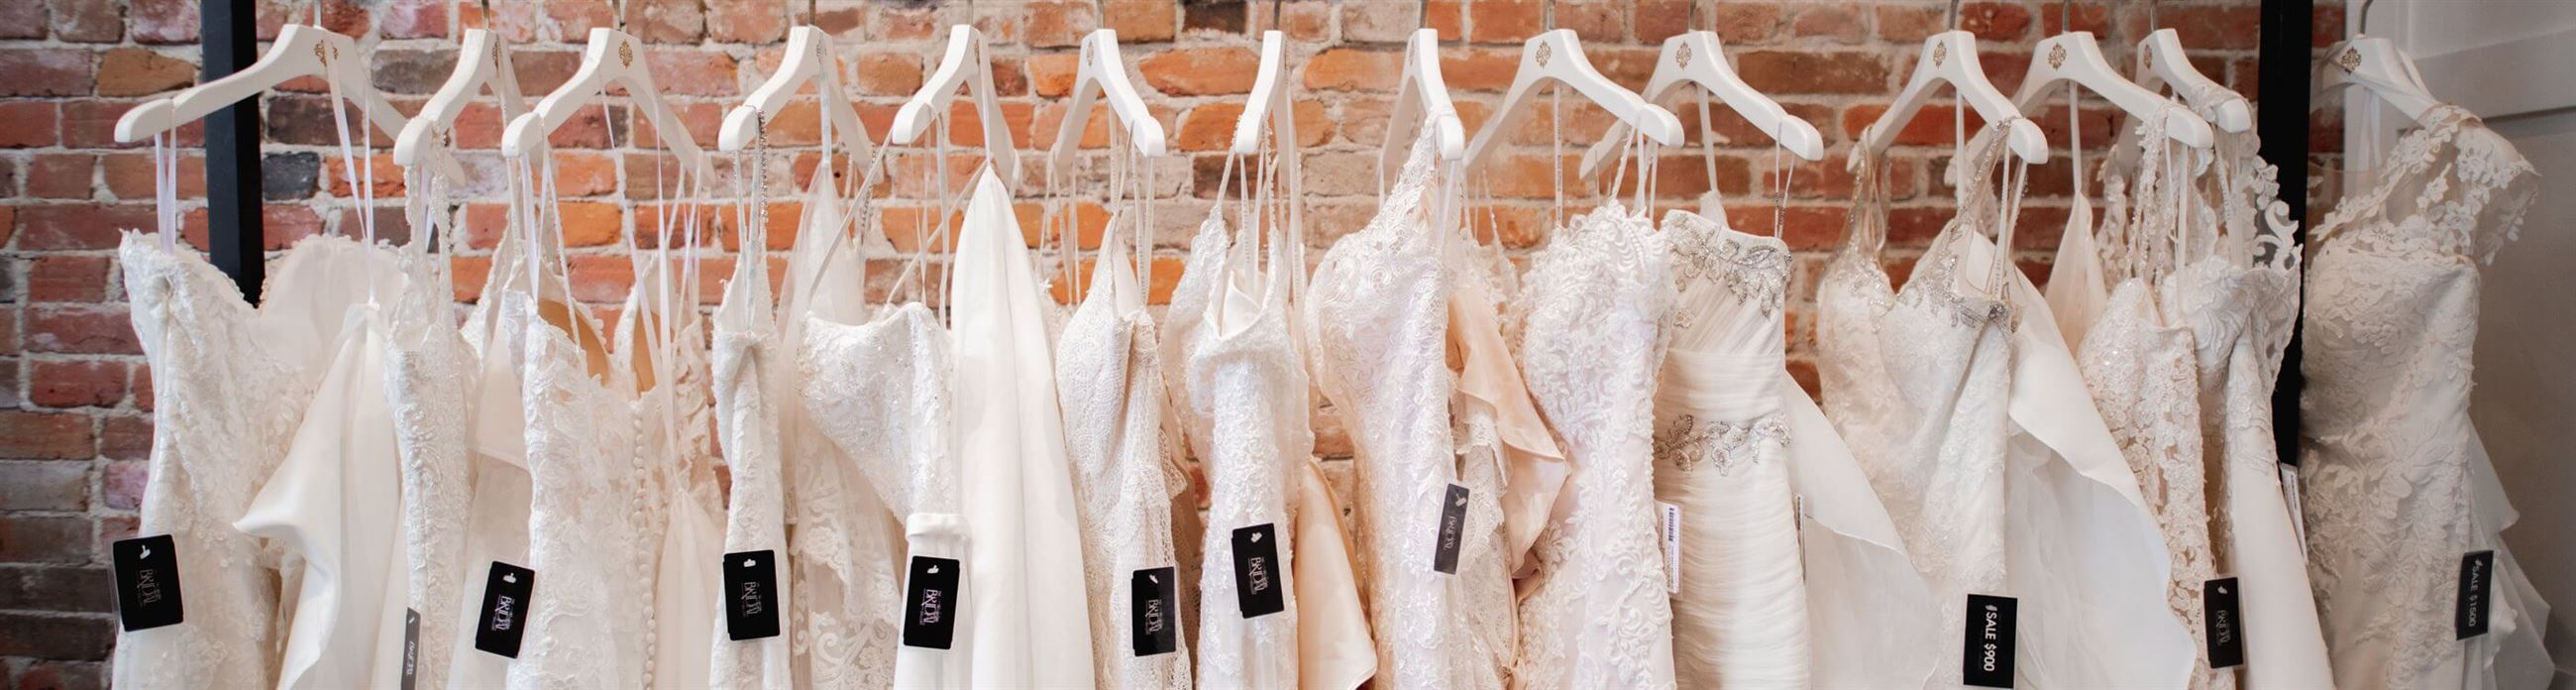 Wedding dresses on racks